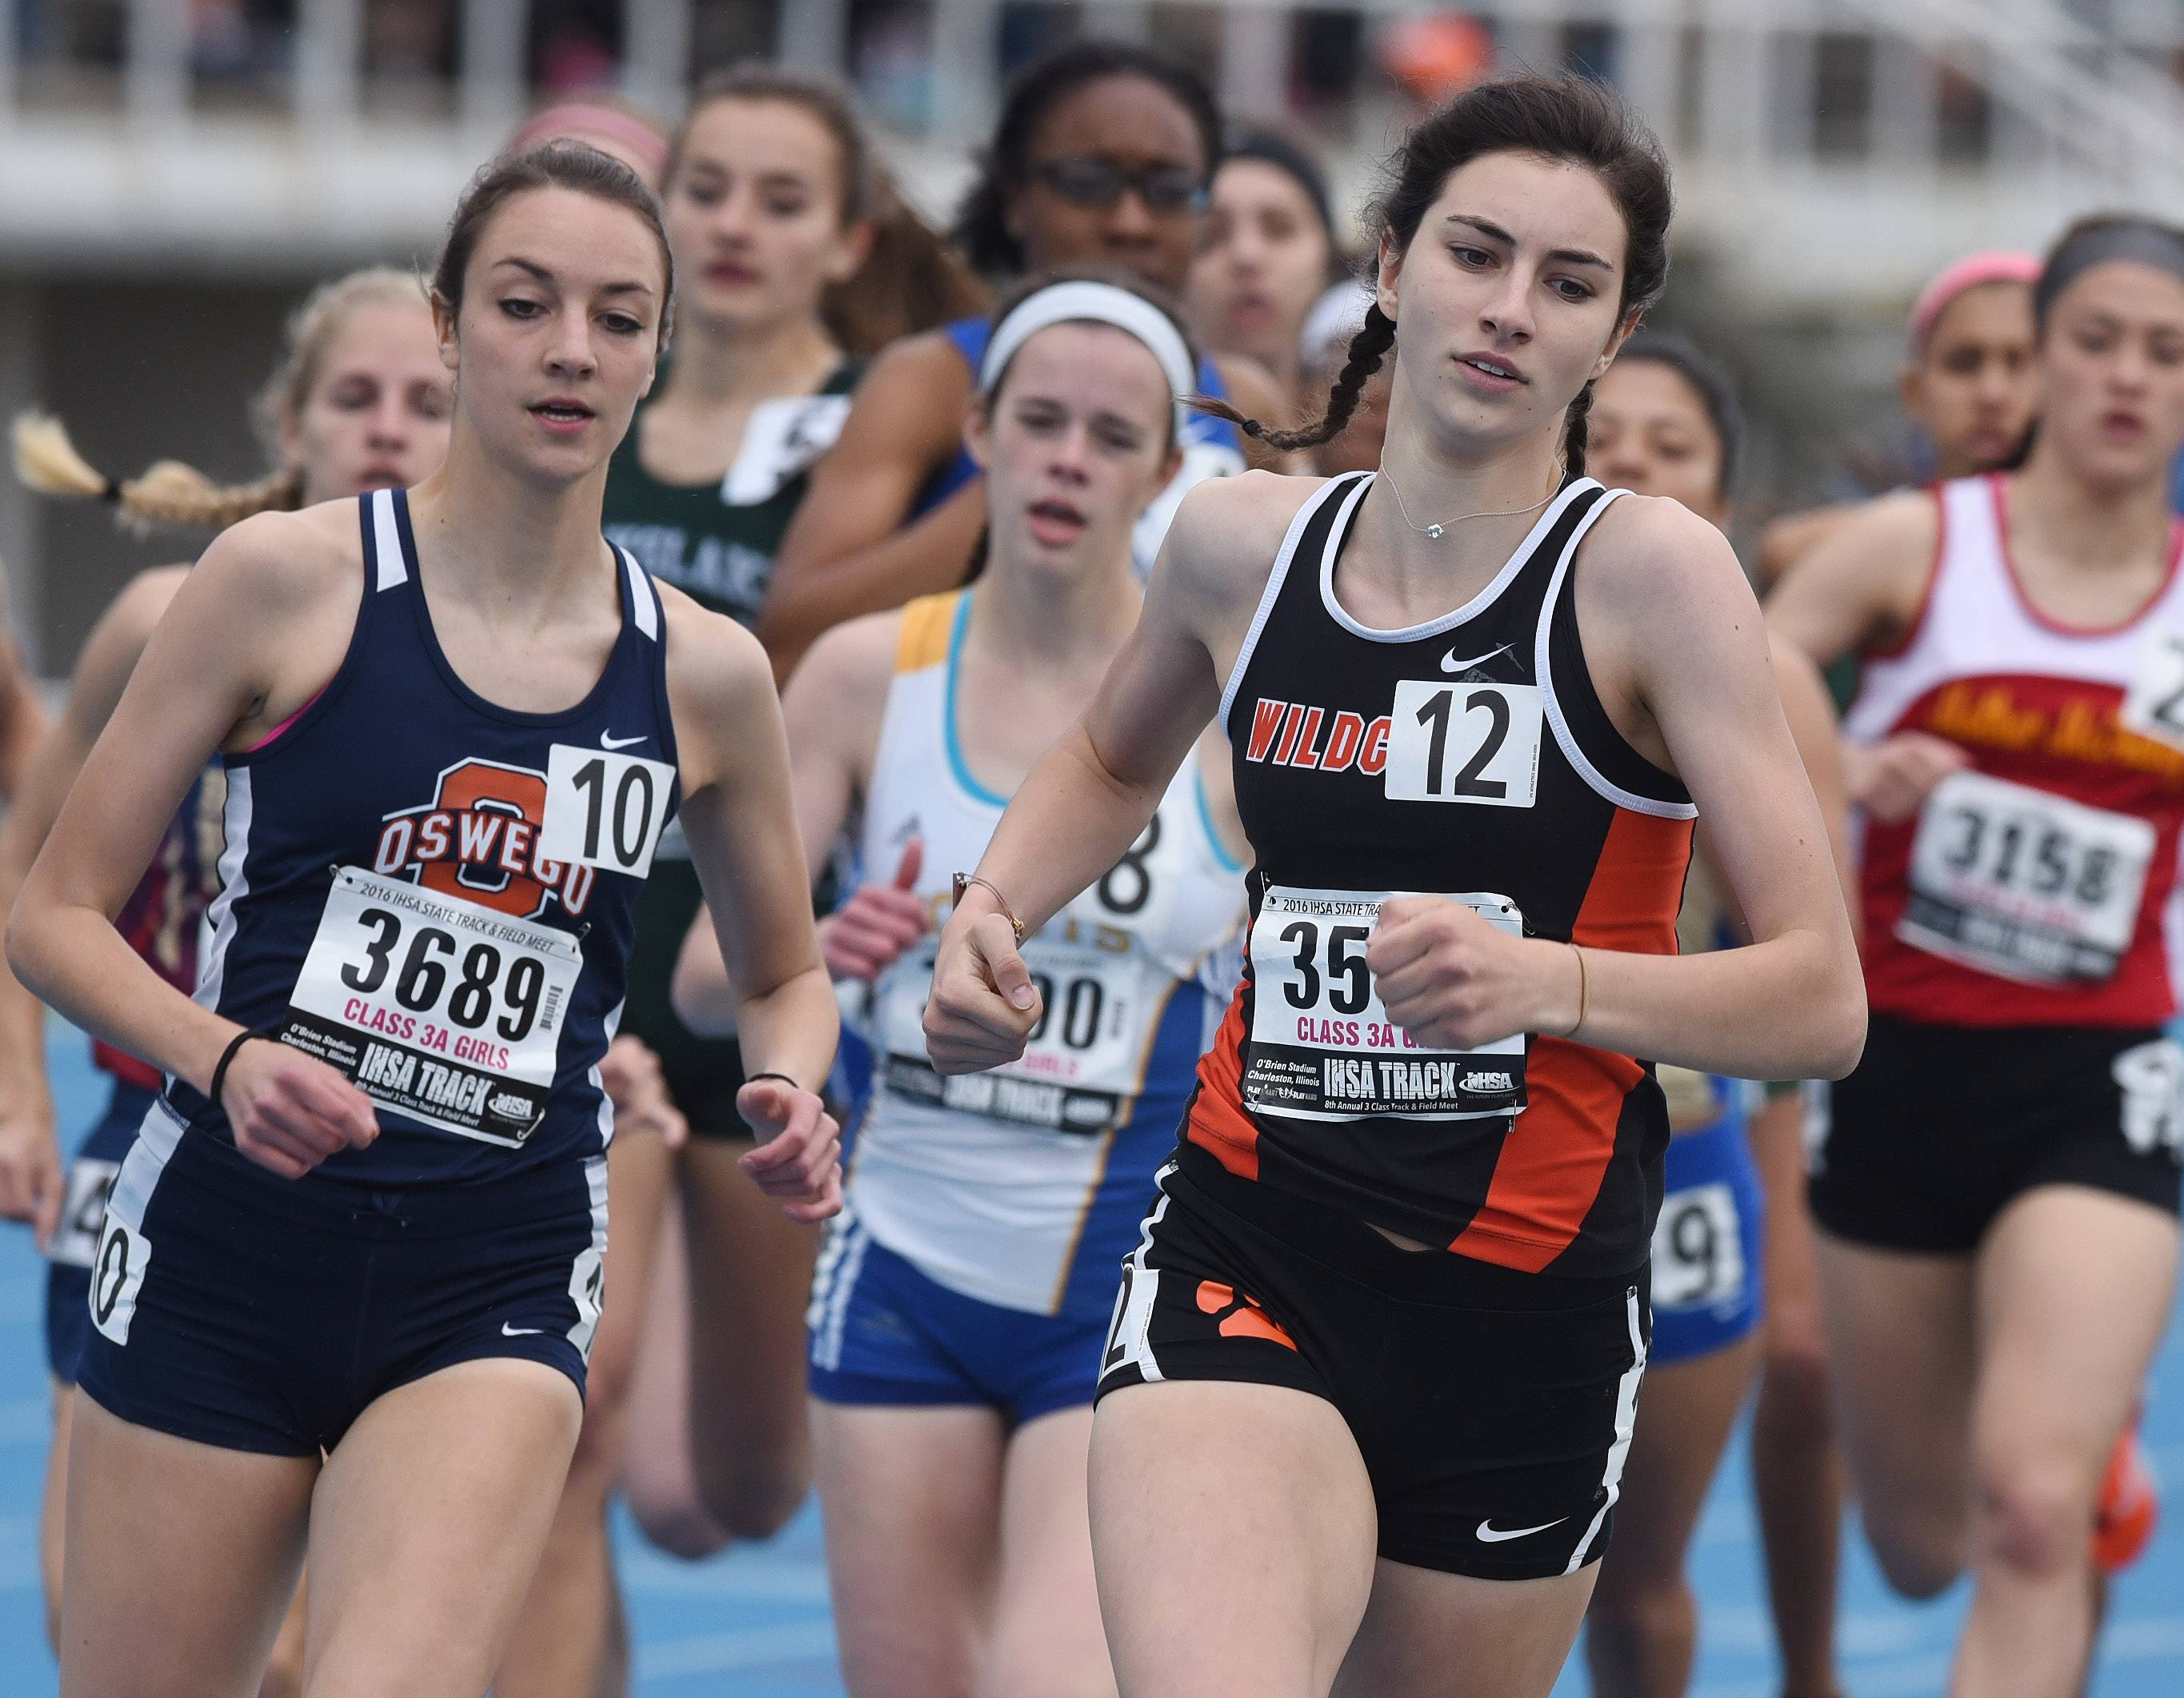 Libertyville's Avryl Johnson is out in front during heat one of the 800-meter run during the Class 3A girls state track meet preliminaries in Charleston on Friday.